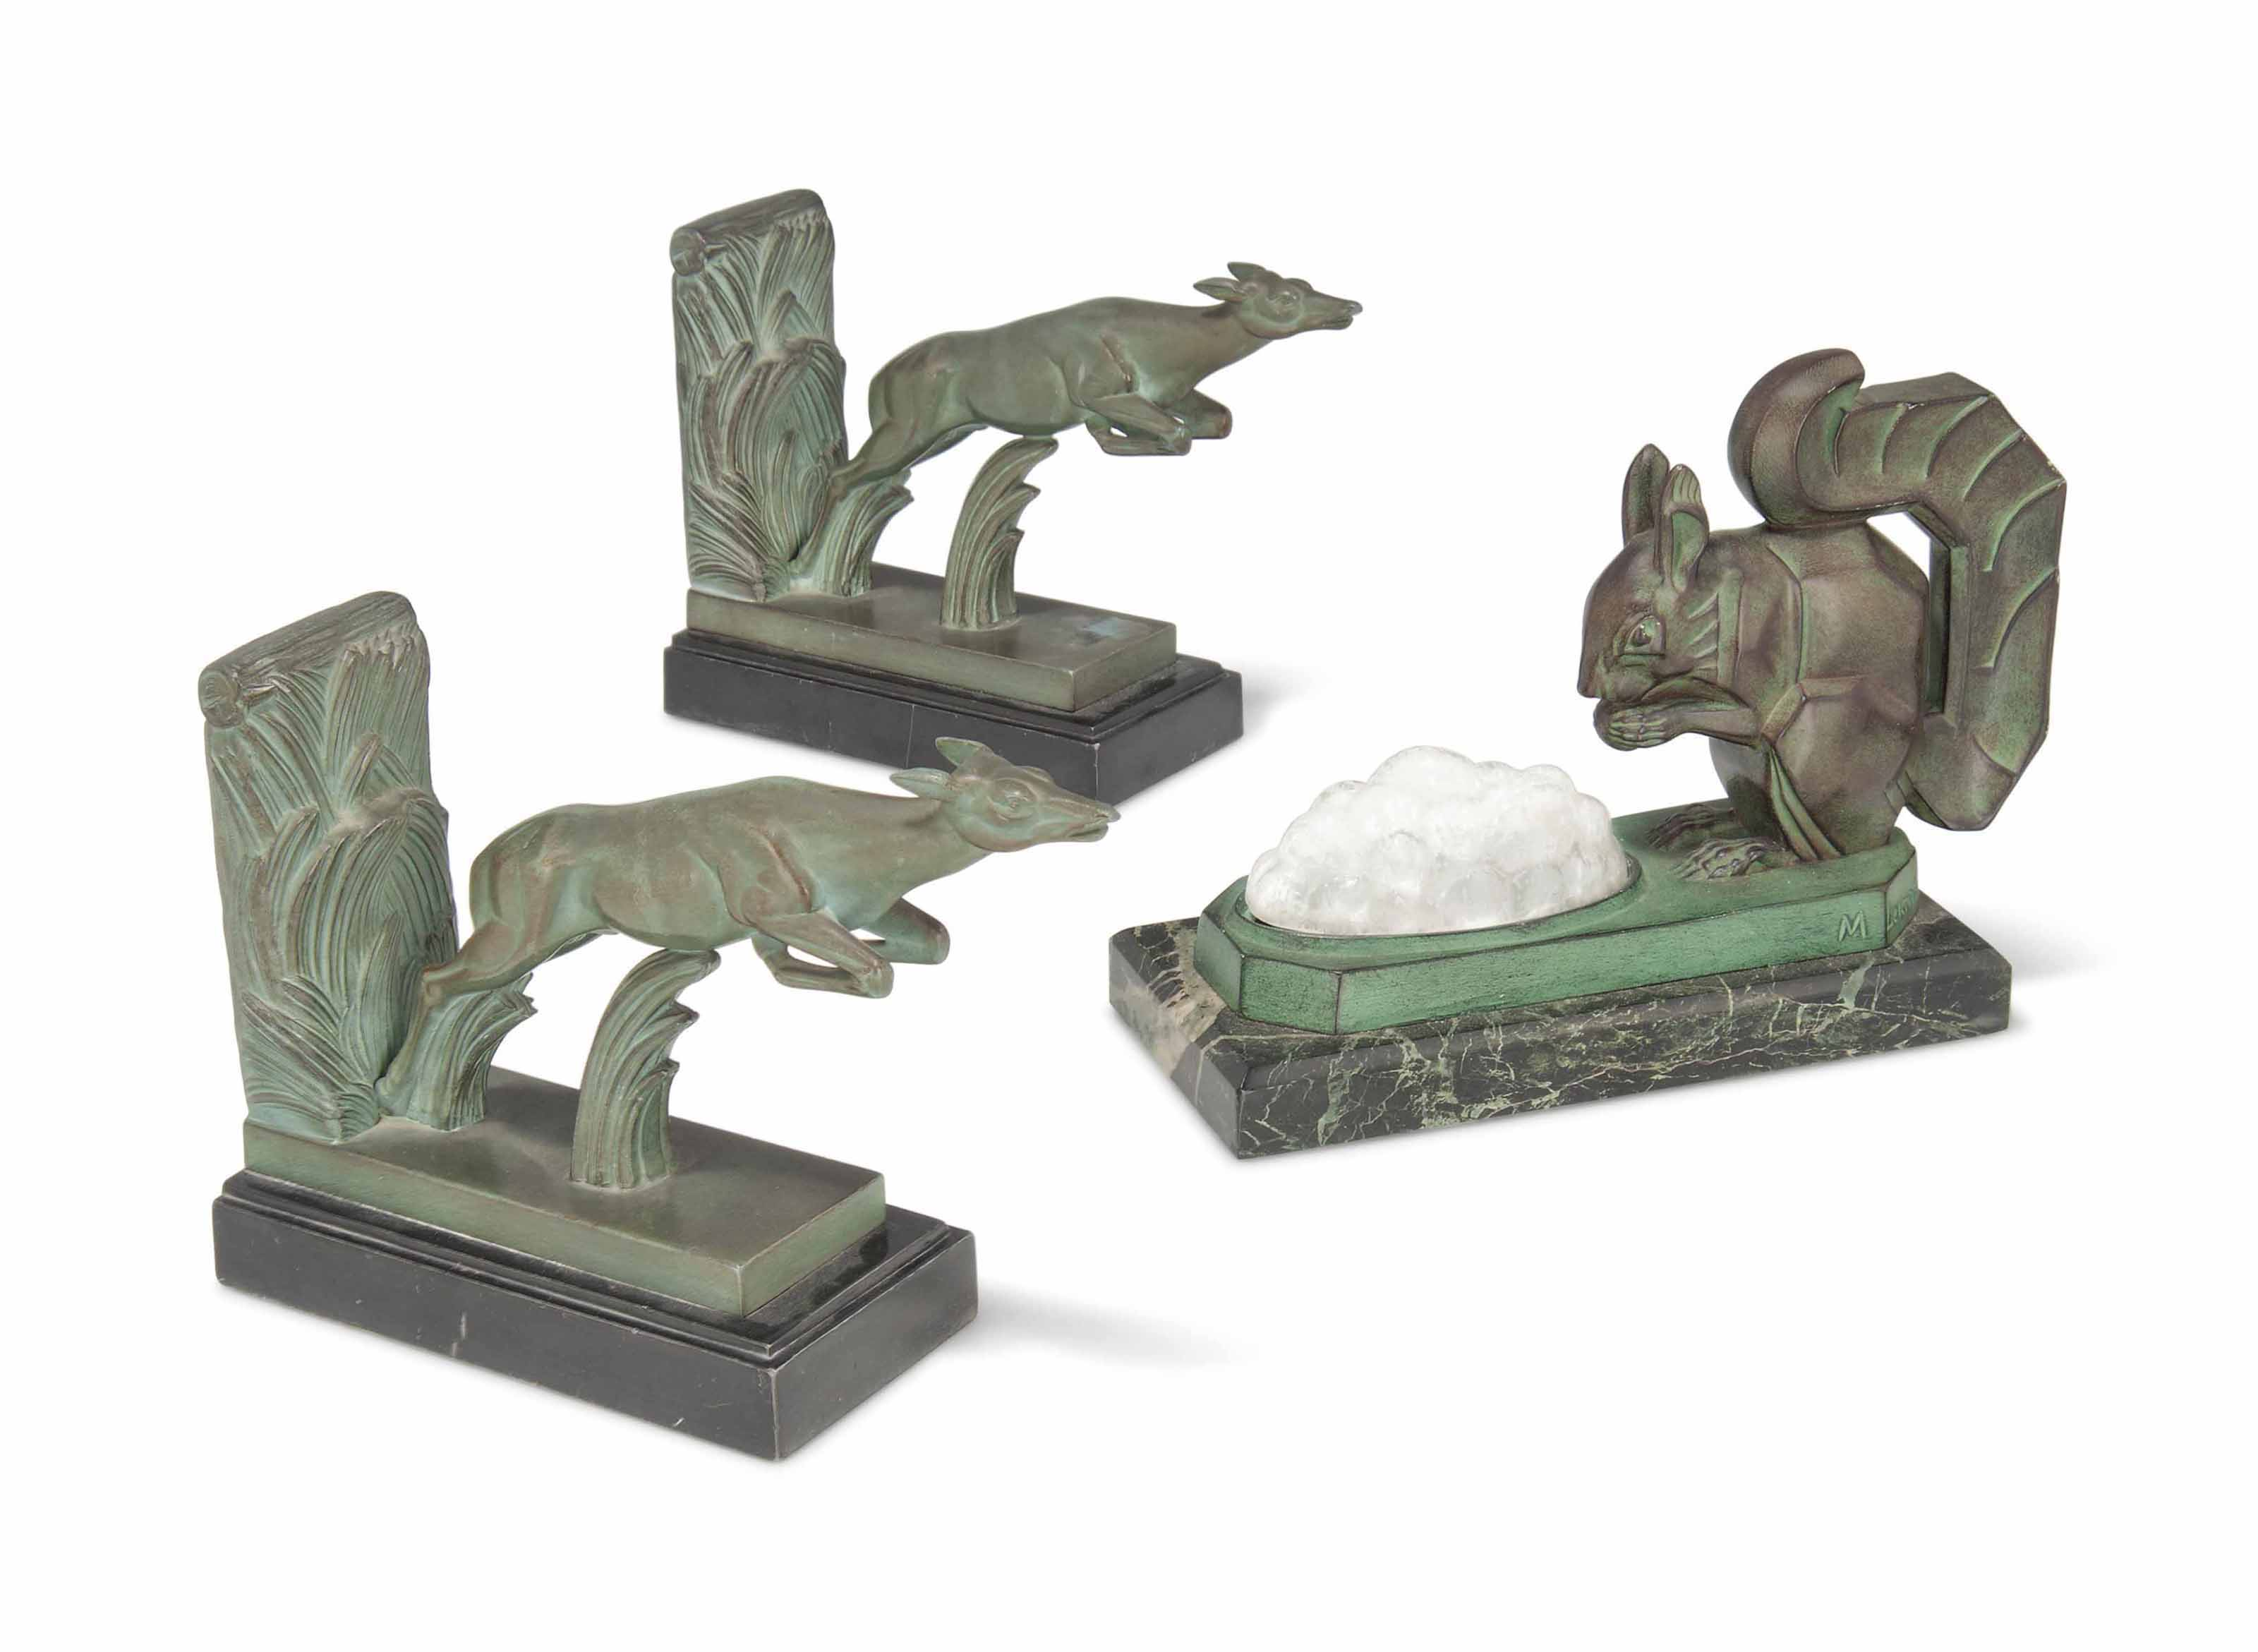 A MAX LE VERRIER COLD-PAINTED 'SQUIRREL' NIGHT LIGHT AND A PAIR OF 'DEER' BOOKENDS